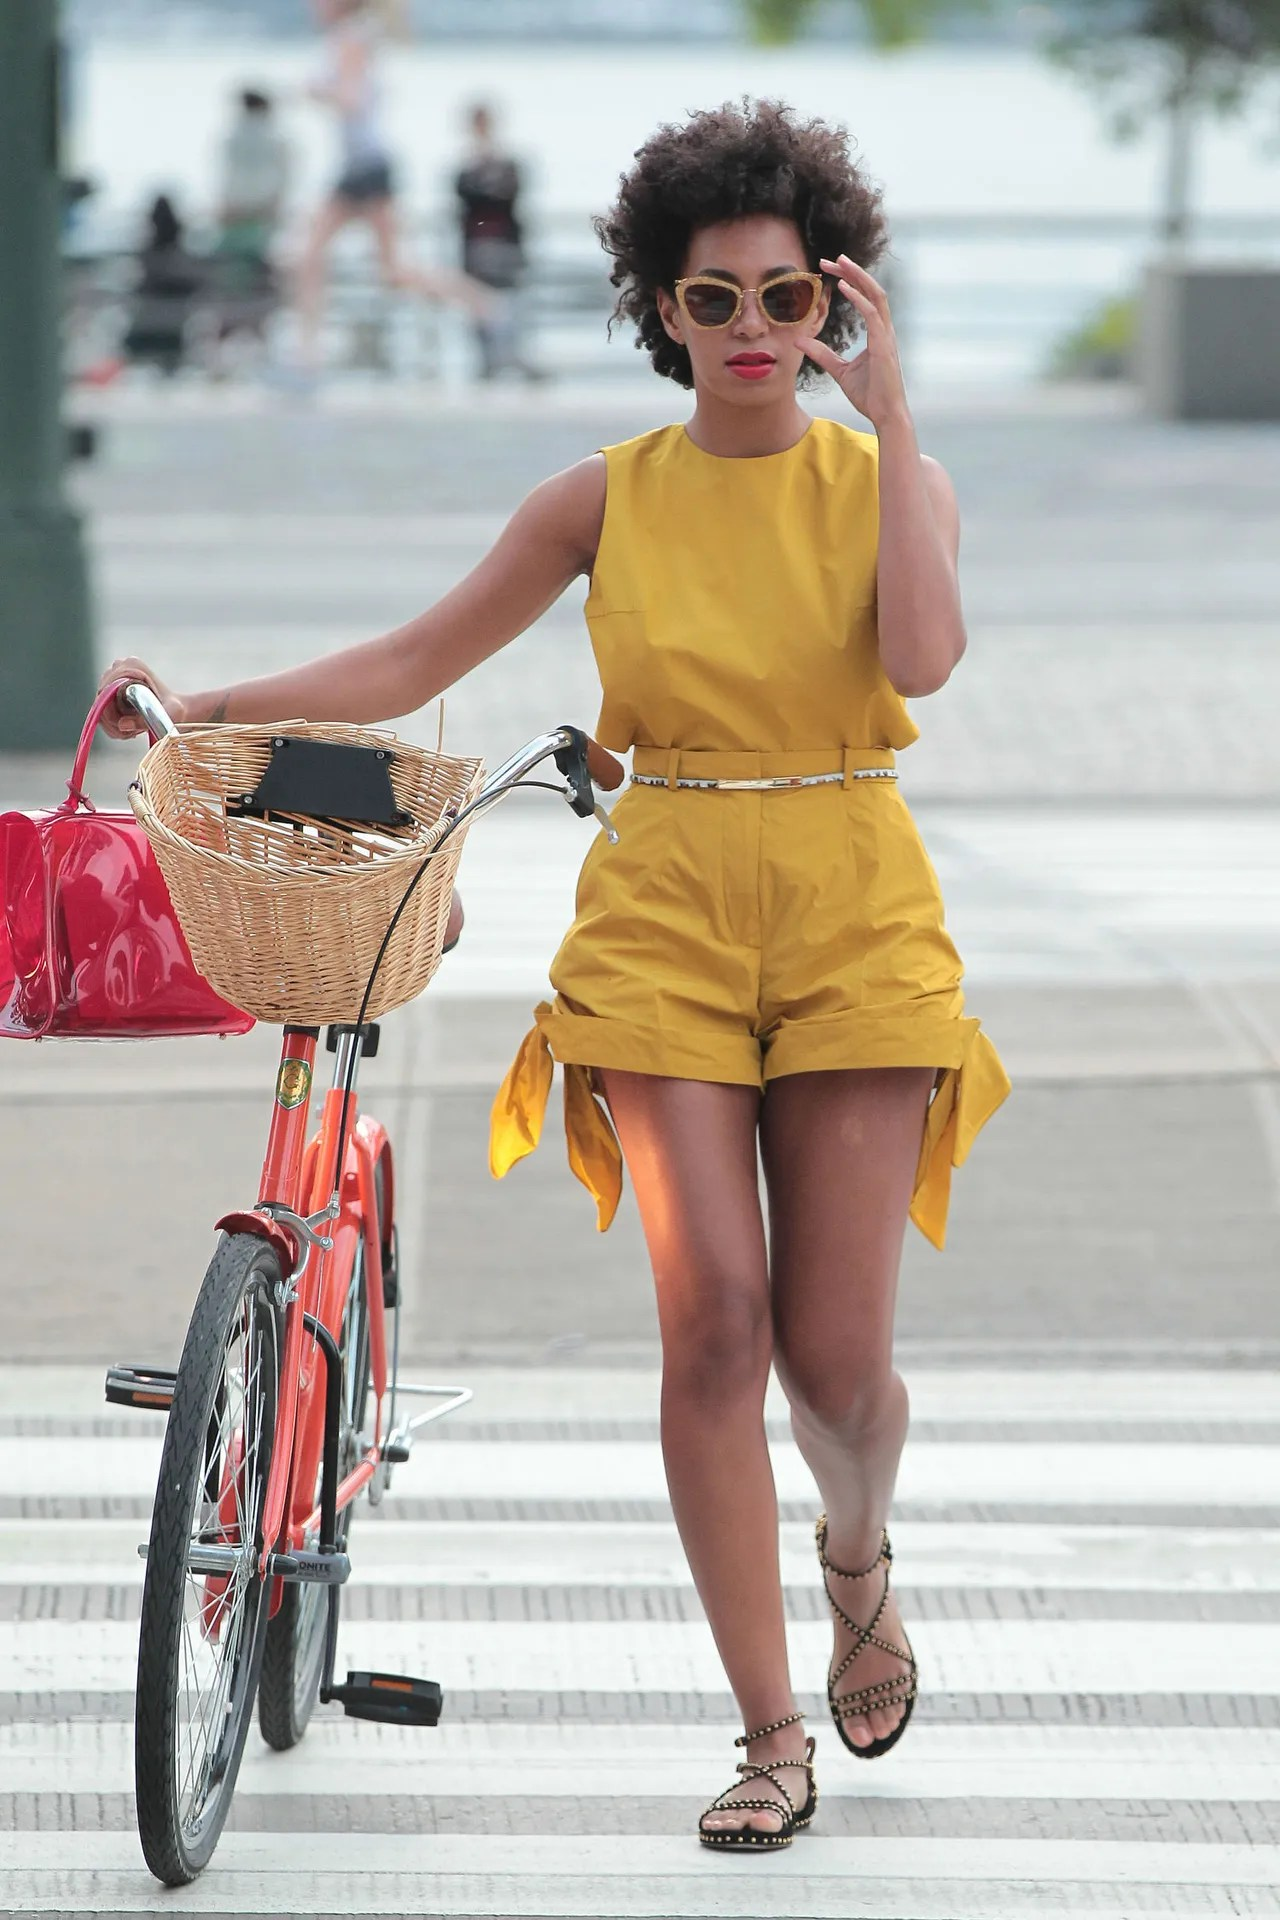 Bike Style 4 Outfit Ideas That Are Perfect for Your Two